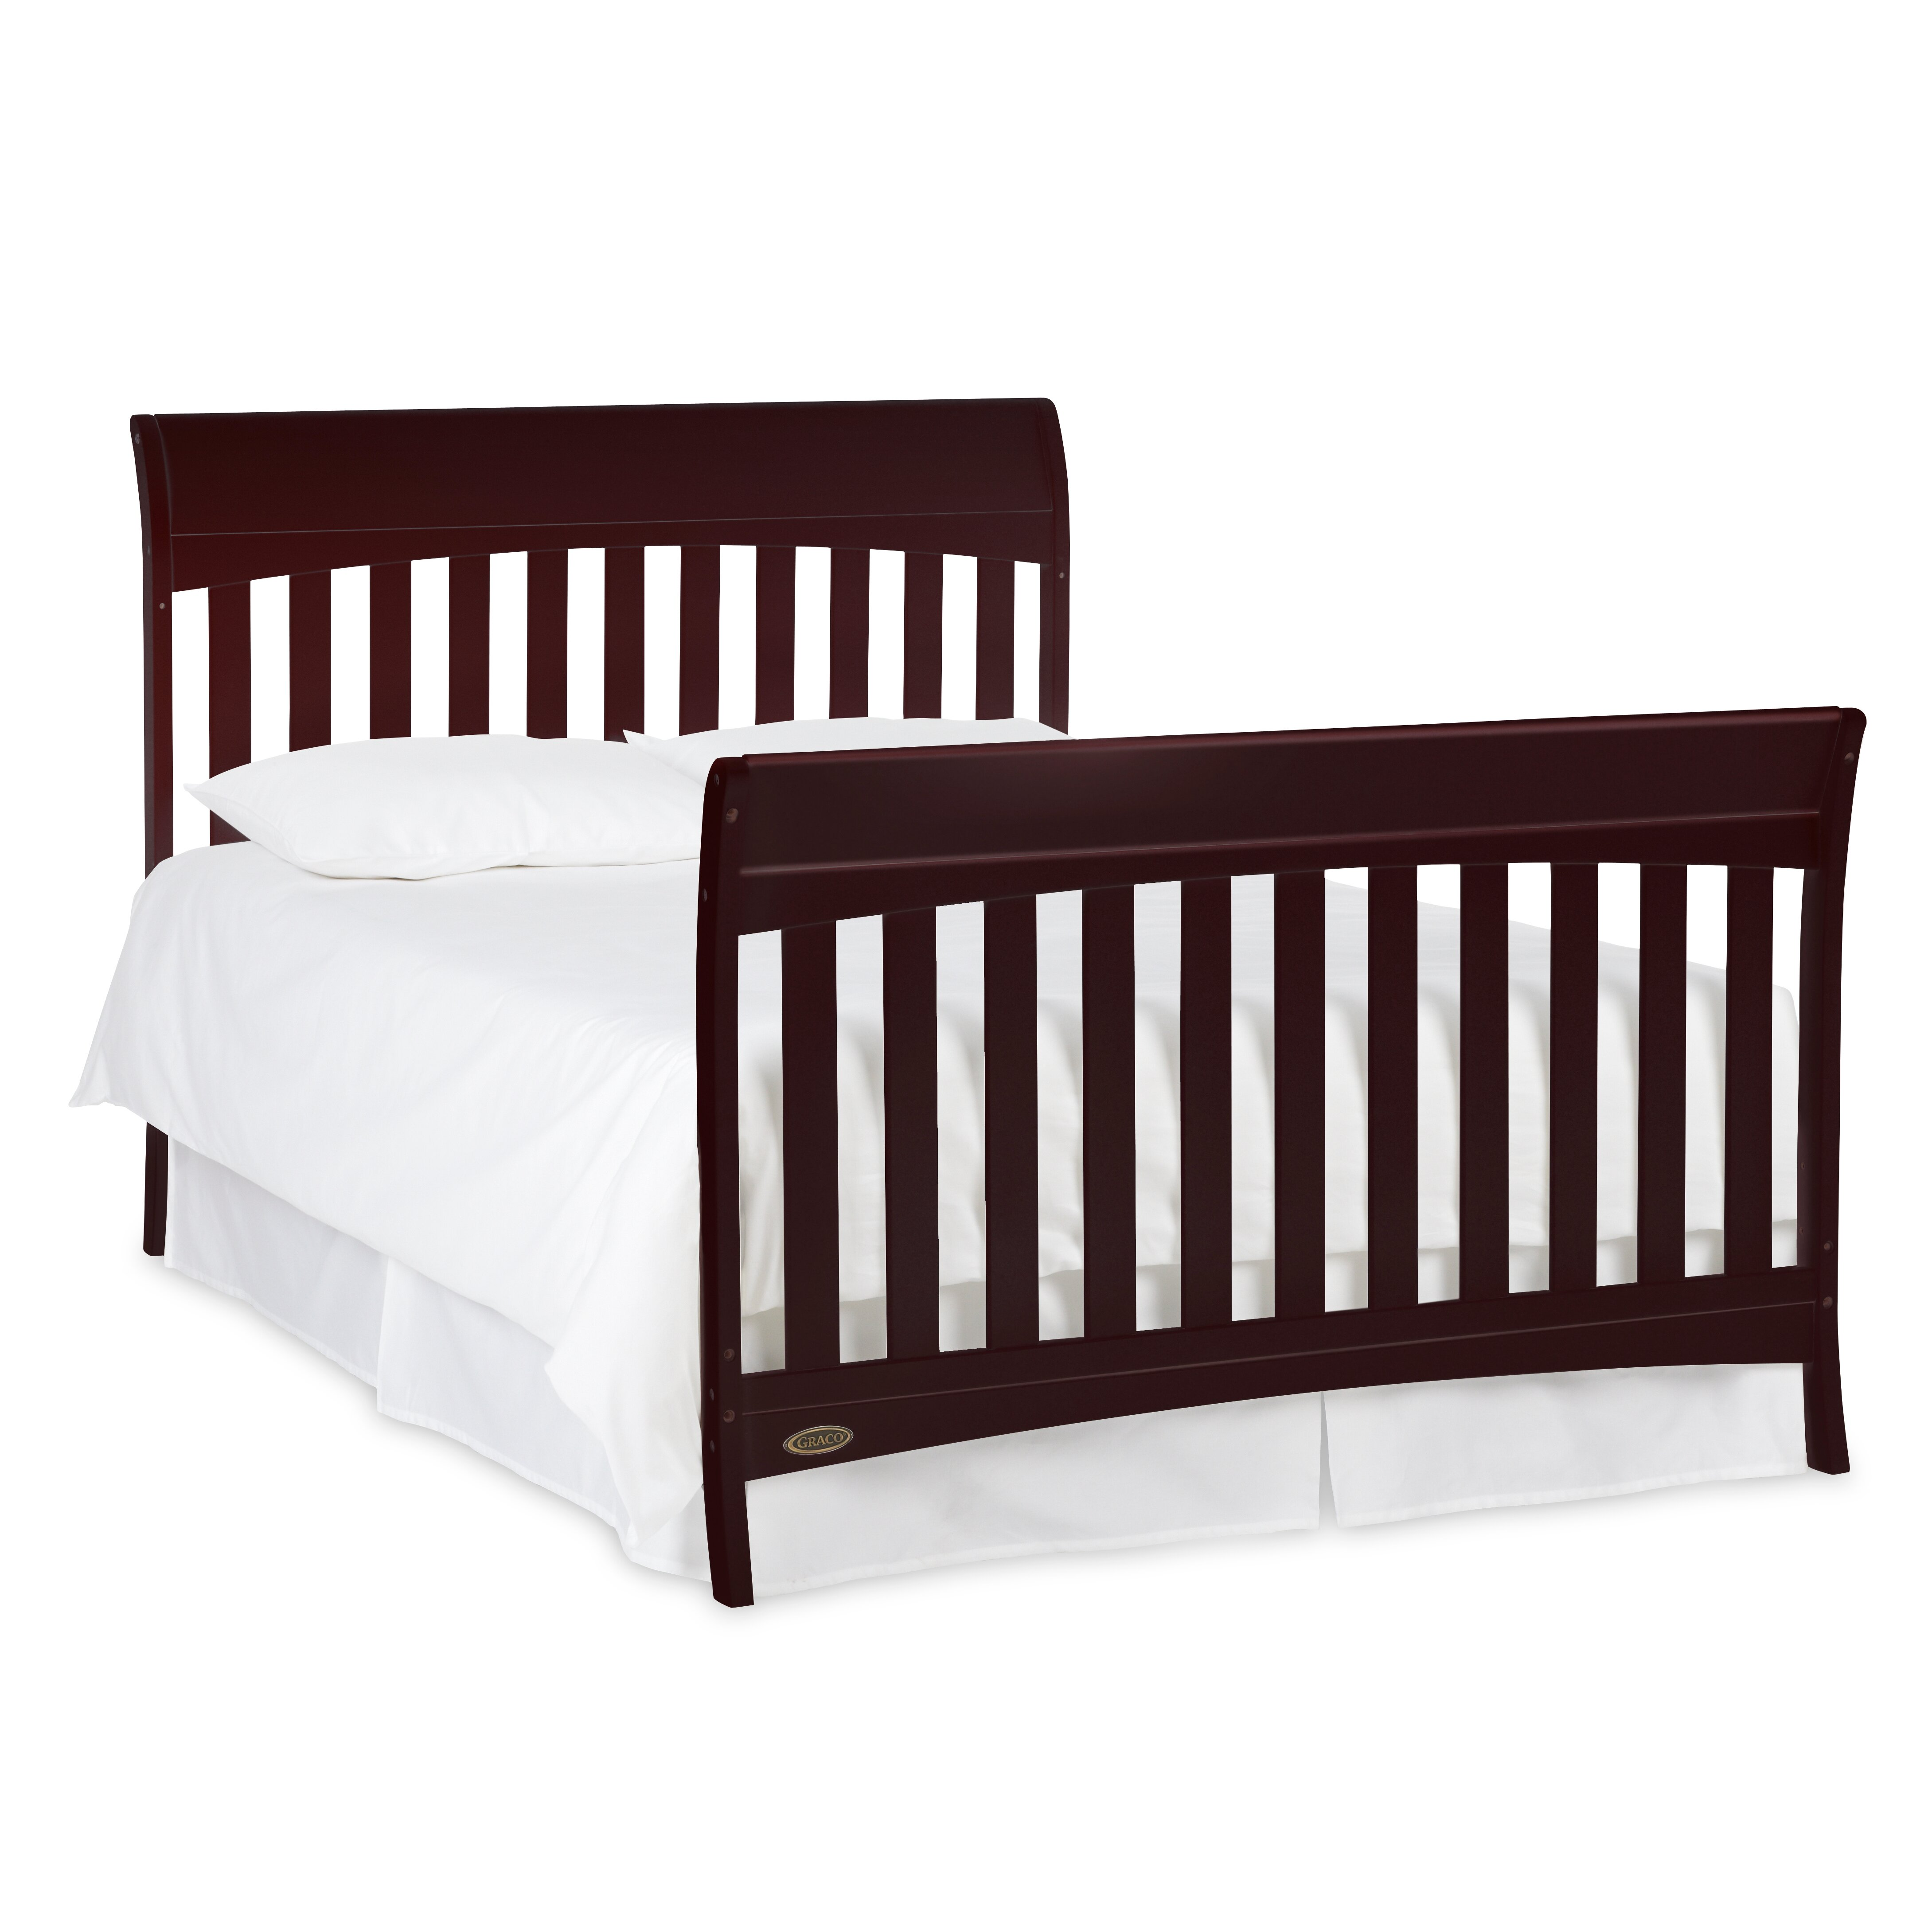 Toddler bed rails for convertible cribs - Convertible Cribs Graco Sku Gr2213